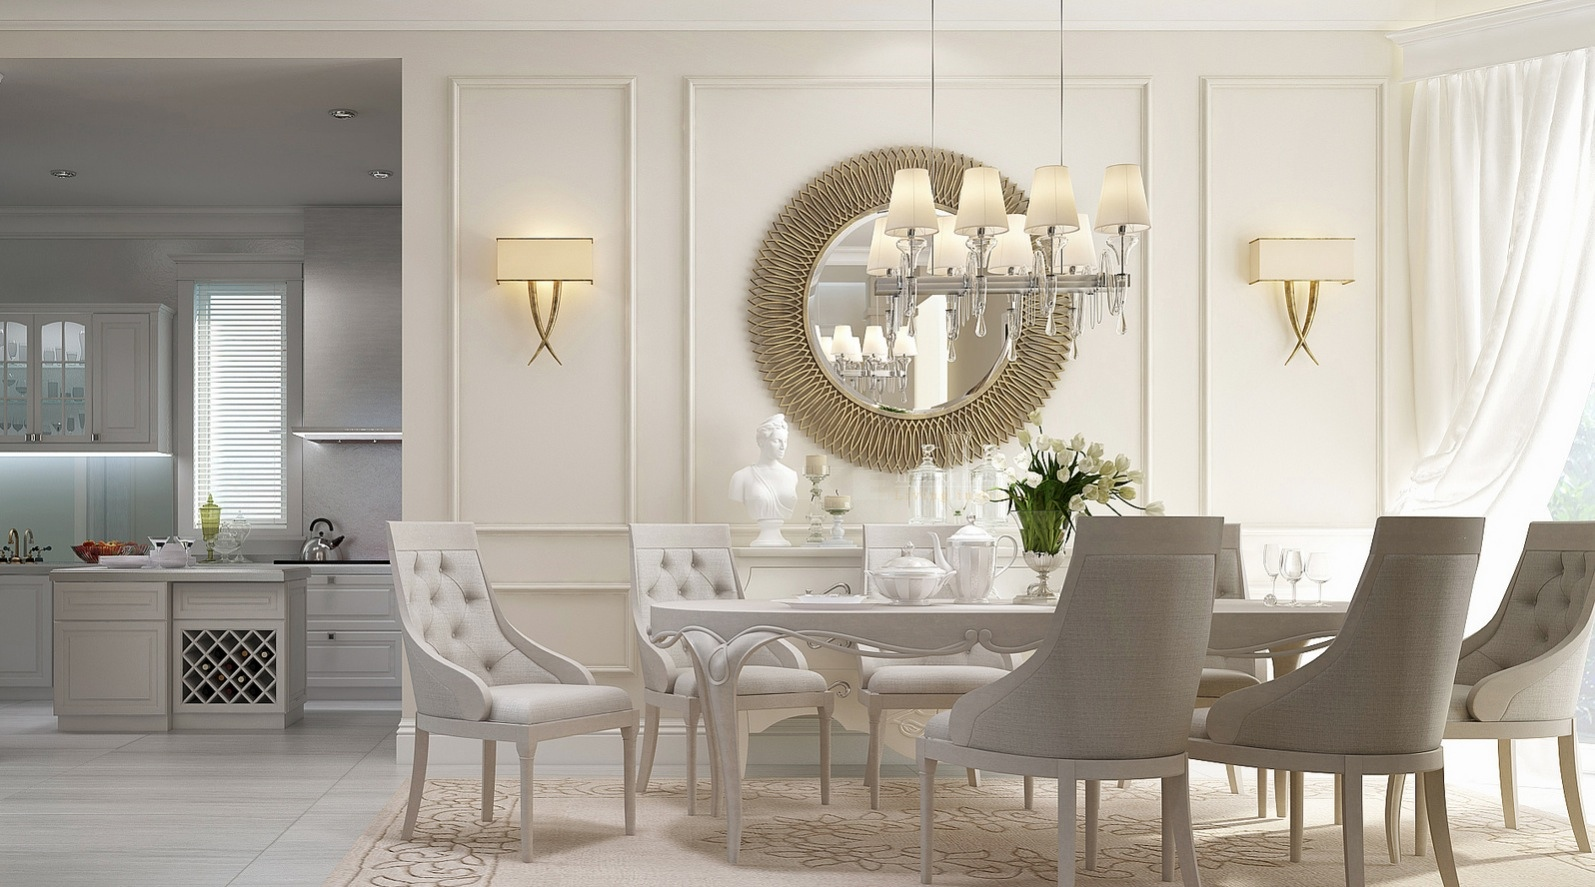 20-dining-rooms-visualized-17